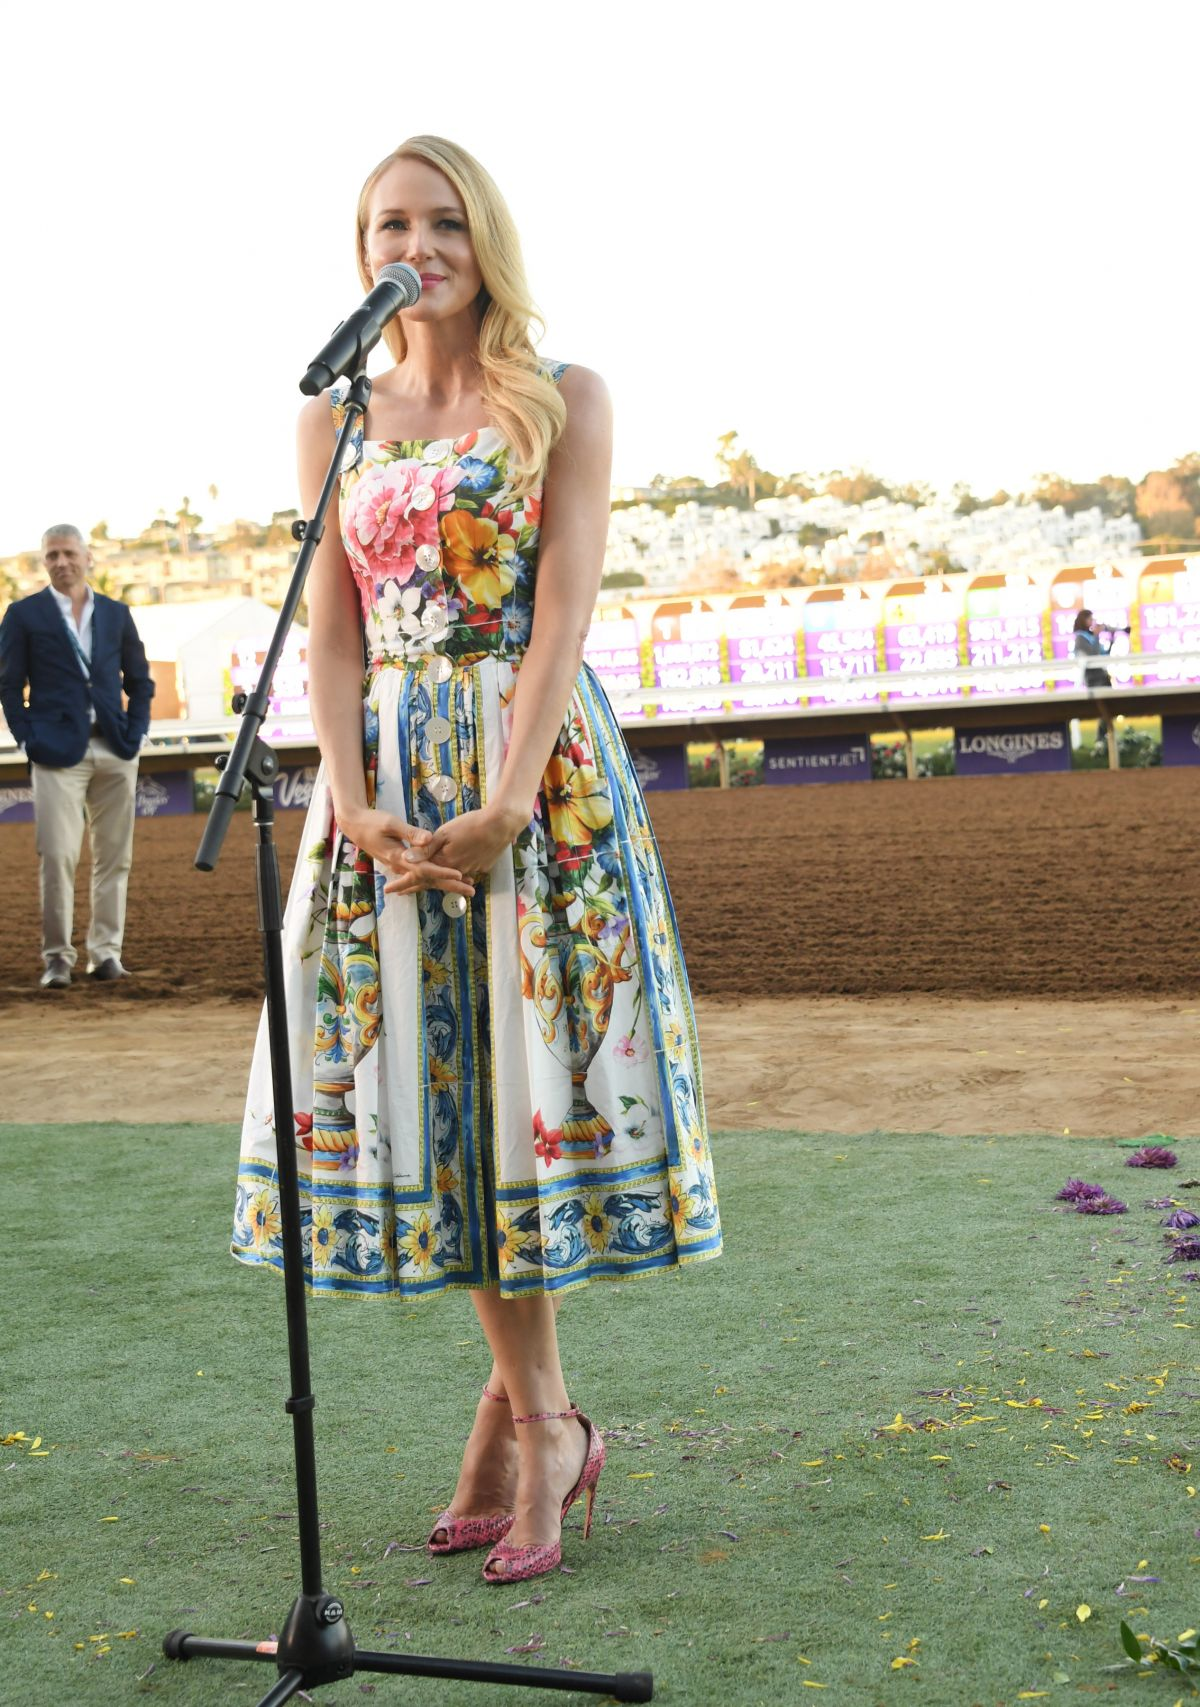 Jewel Kilcher At 2017 Breeders Cup World Championships In